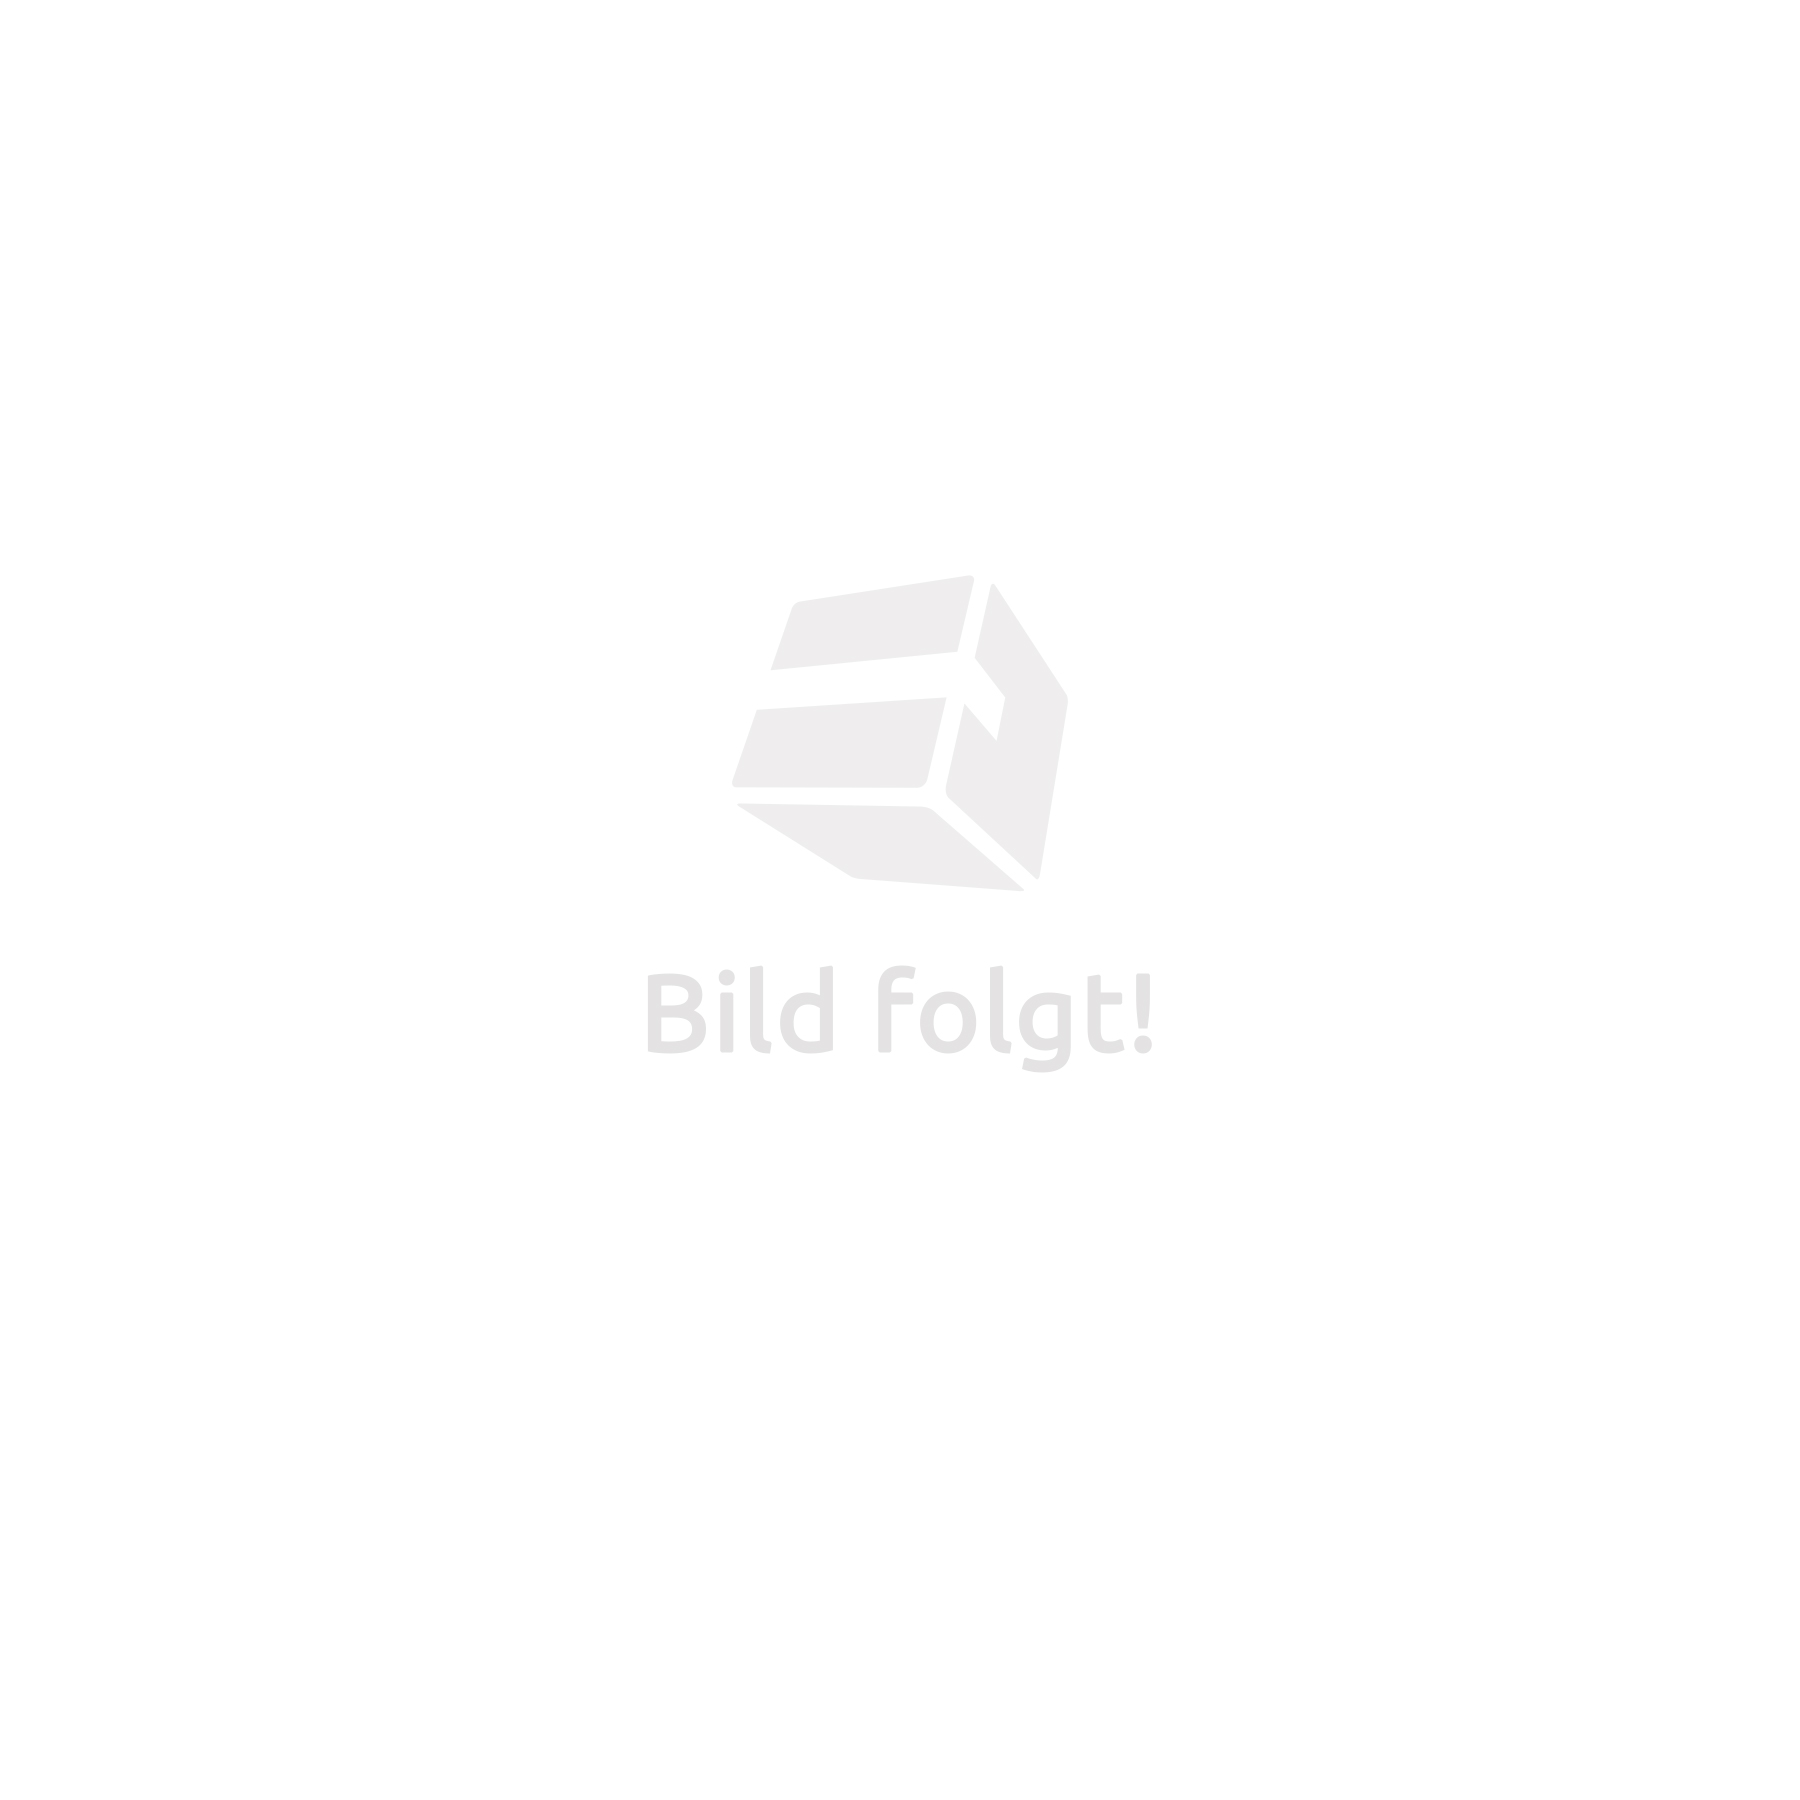 Floating shelves with 2 tiers model 3